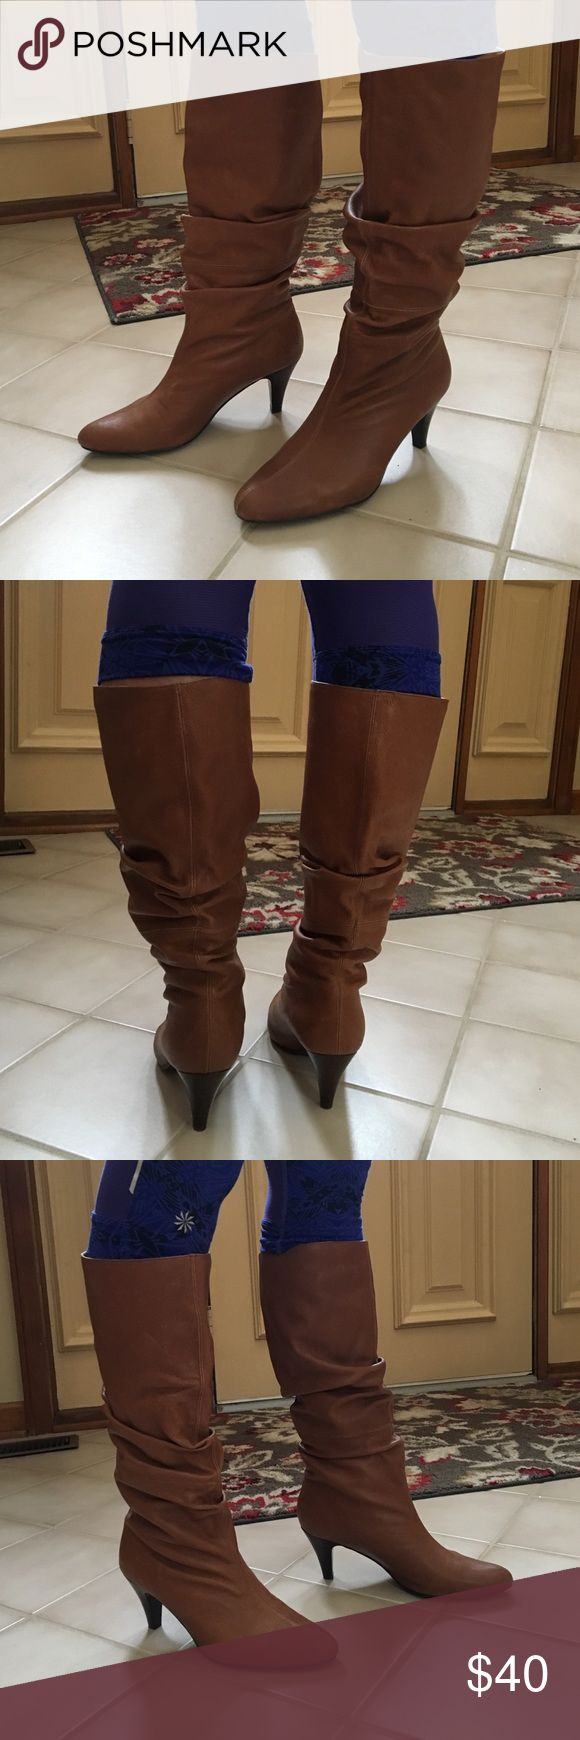 Zara size 38 tan leather boots Zara size 38 tan leather boots with kitten heel. Worn a few times but in excellent condition. open to offers on 95% of the items in my closet! Zara Shoes Heeled Boots